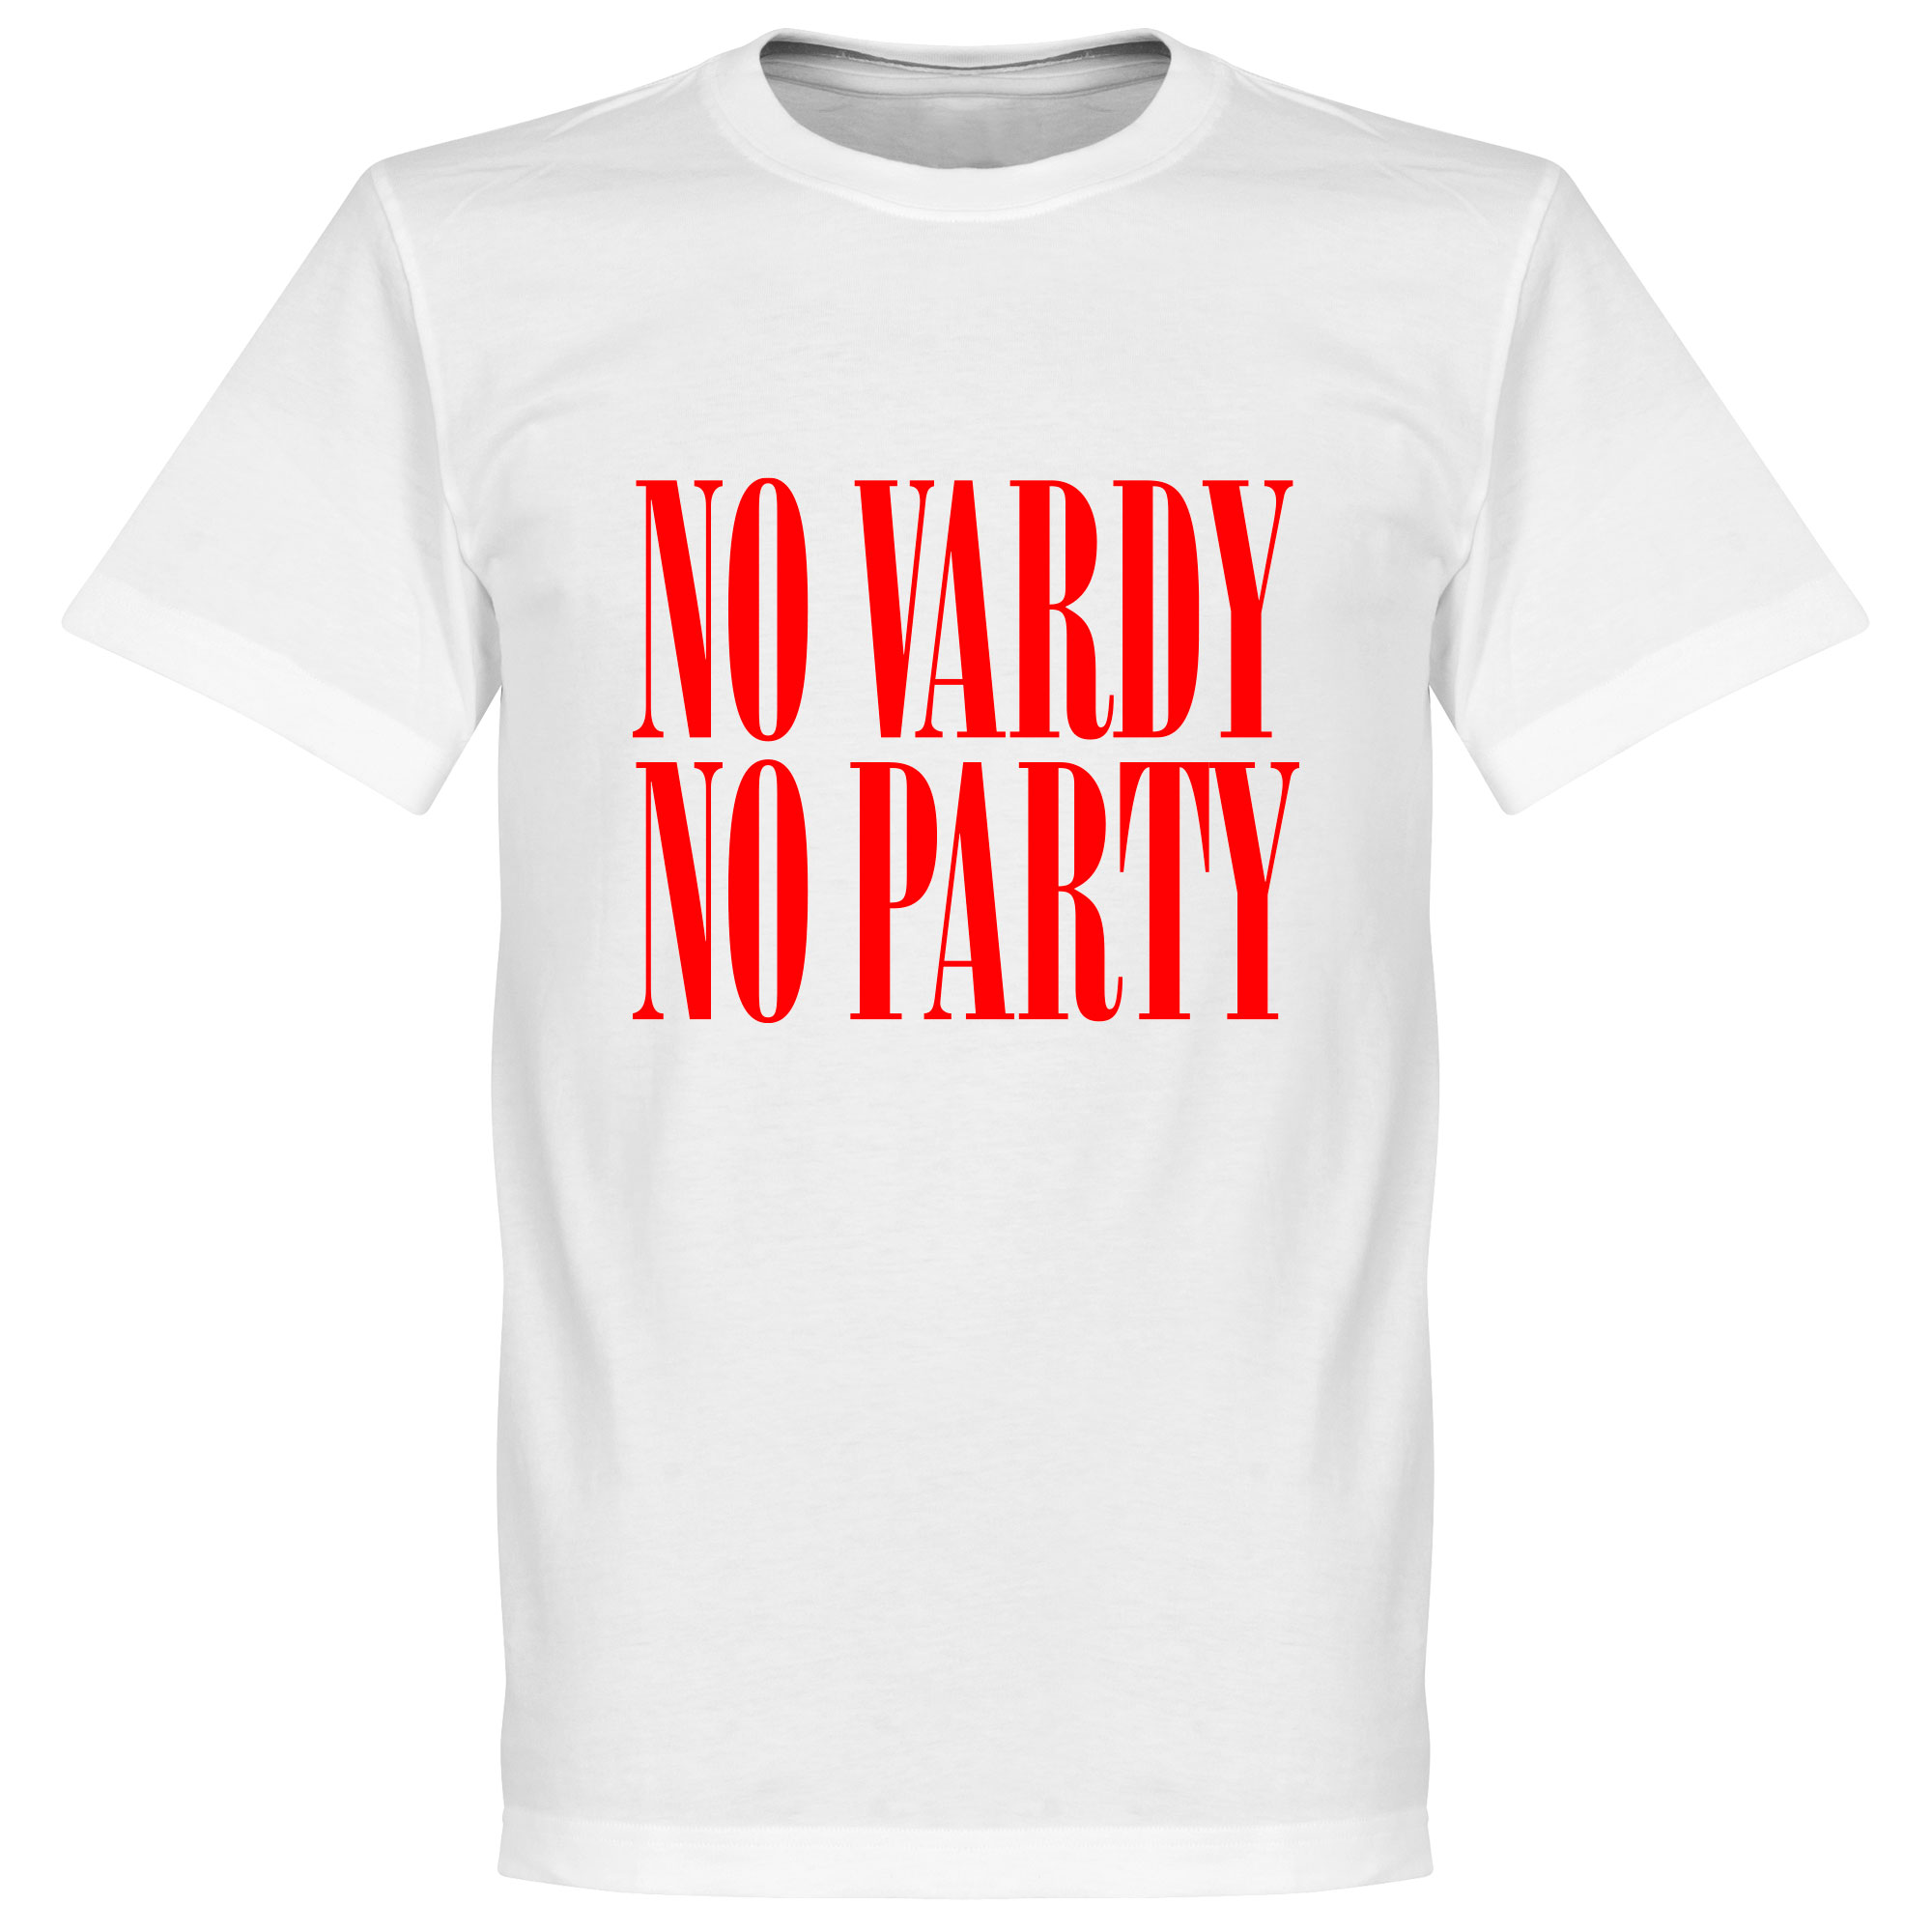 No Vardy No Party Tee - White/Red - XXXL